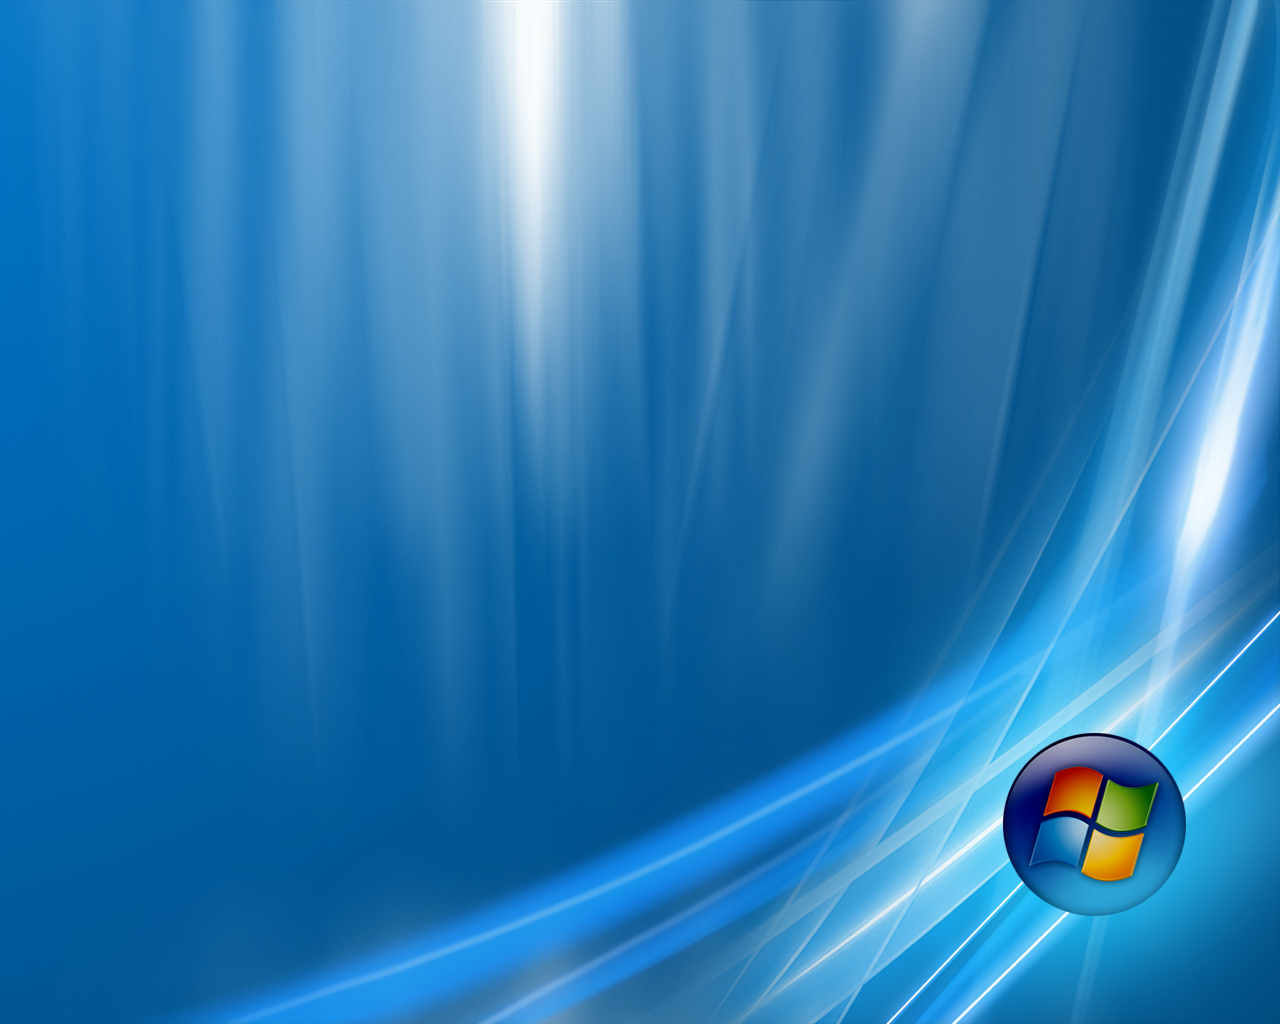 Windows Blue, los primeros detalles del sucesor de Windows 8